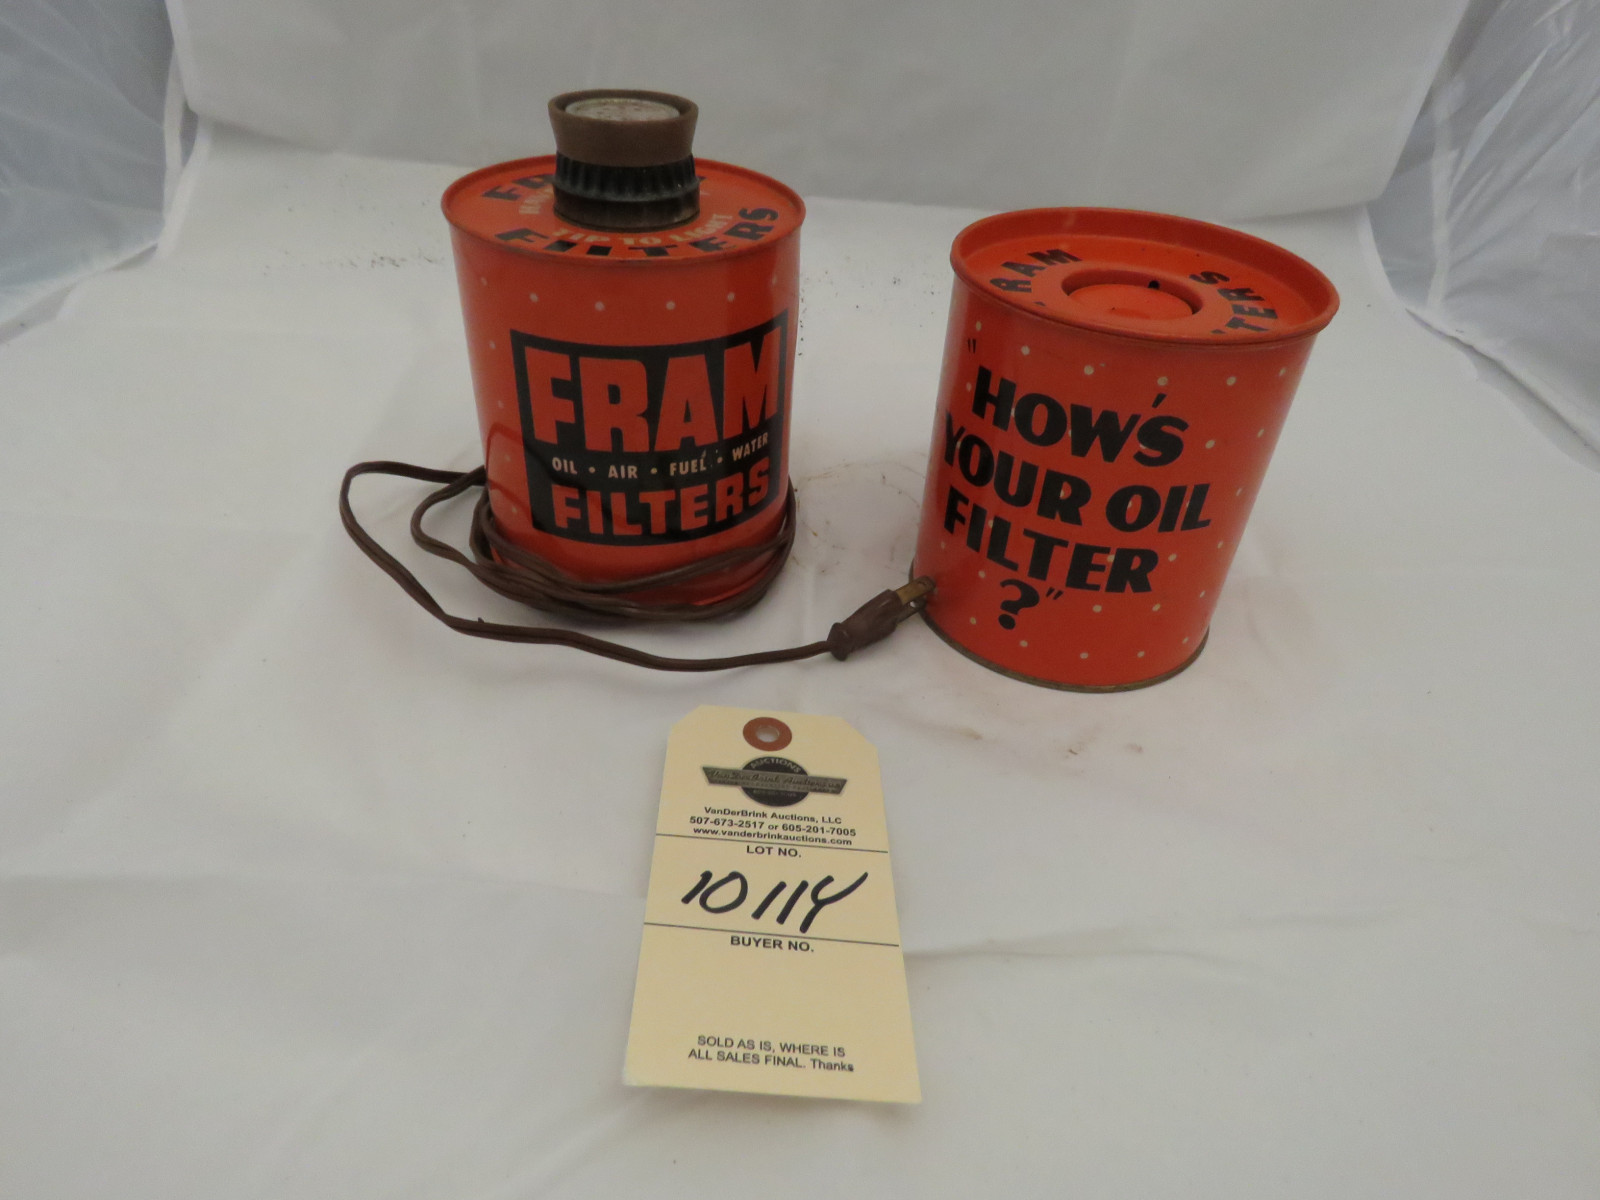 Fram Oil Cigar Lighter and Ashtray - Image 1